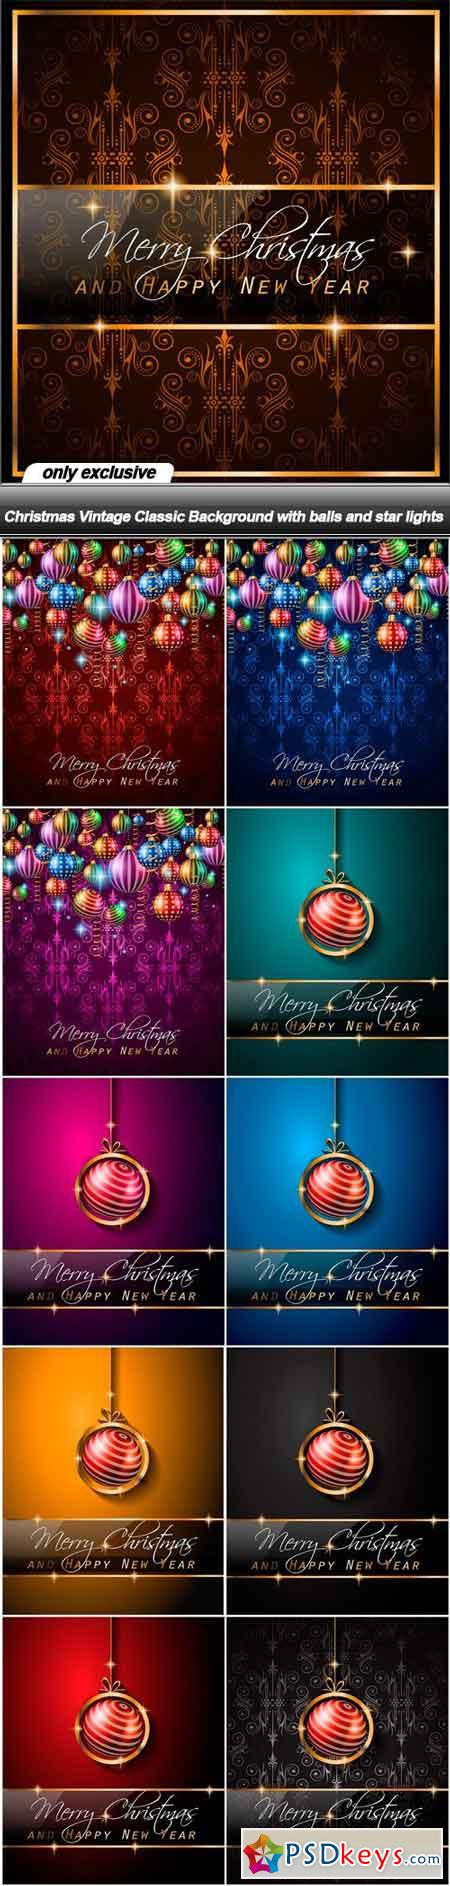 Christmas Vintage Classic Background with balls and star lights - 21 EPS